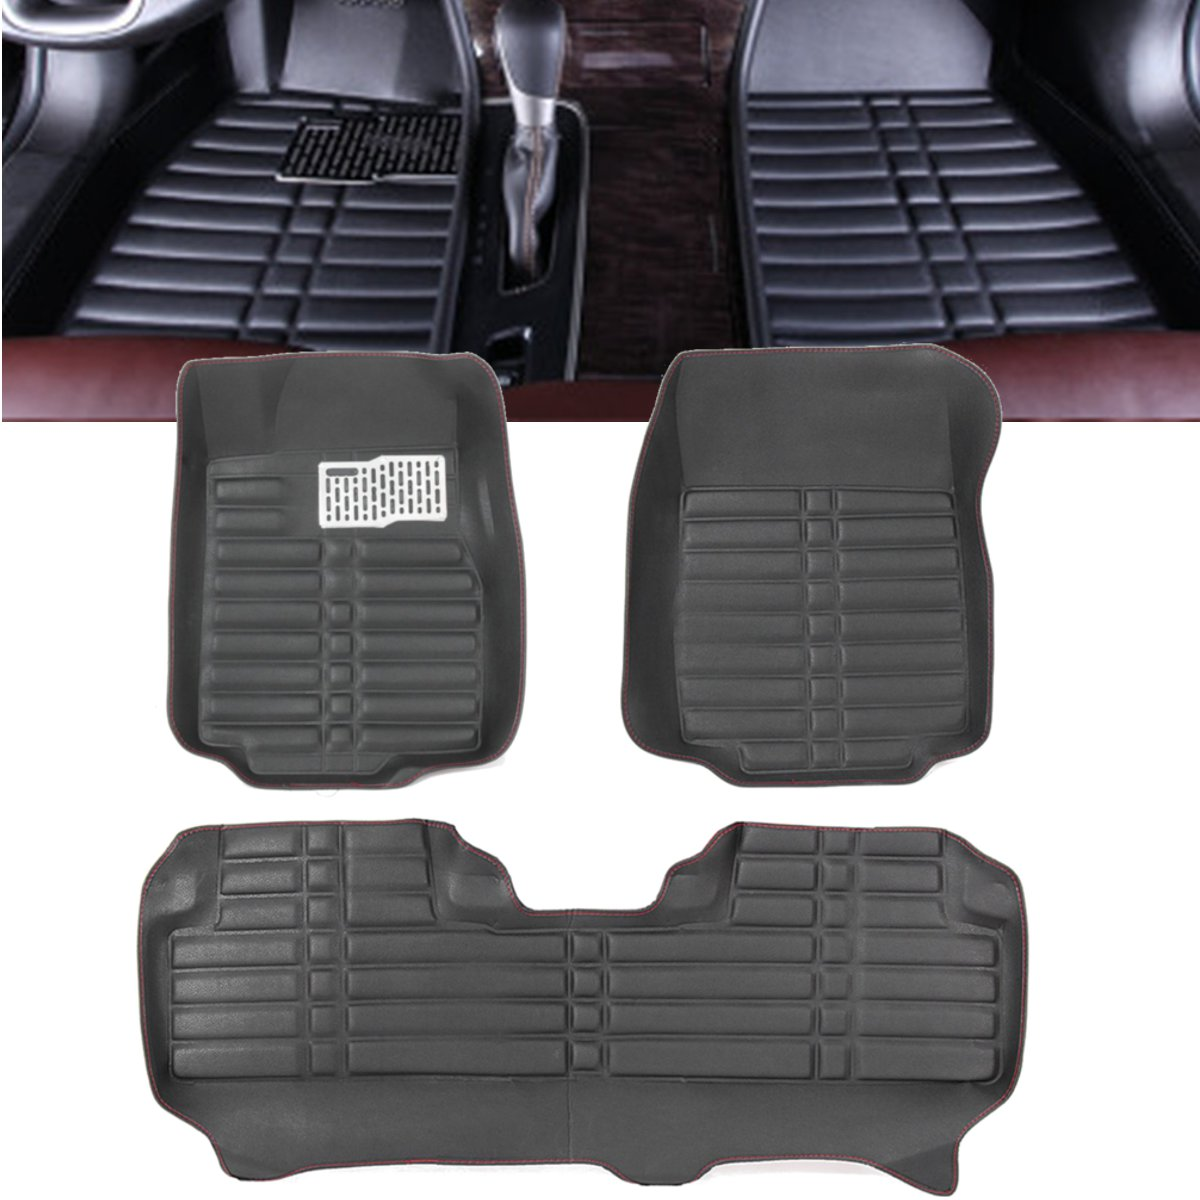 Car Floor Cover Leather Front&Rear Liner Waterproof Mat For Honda CRV 2012-2016 genuine honda 83600 sna a02zd floor mat set